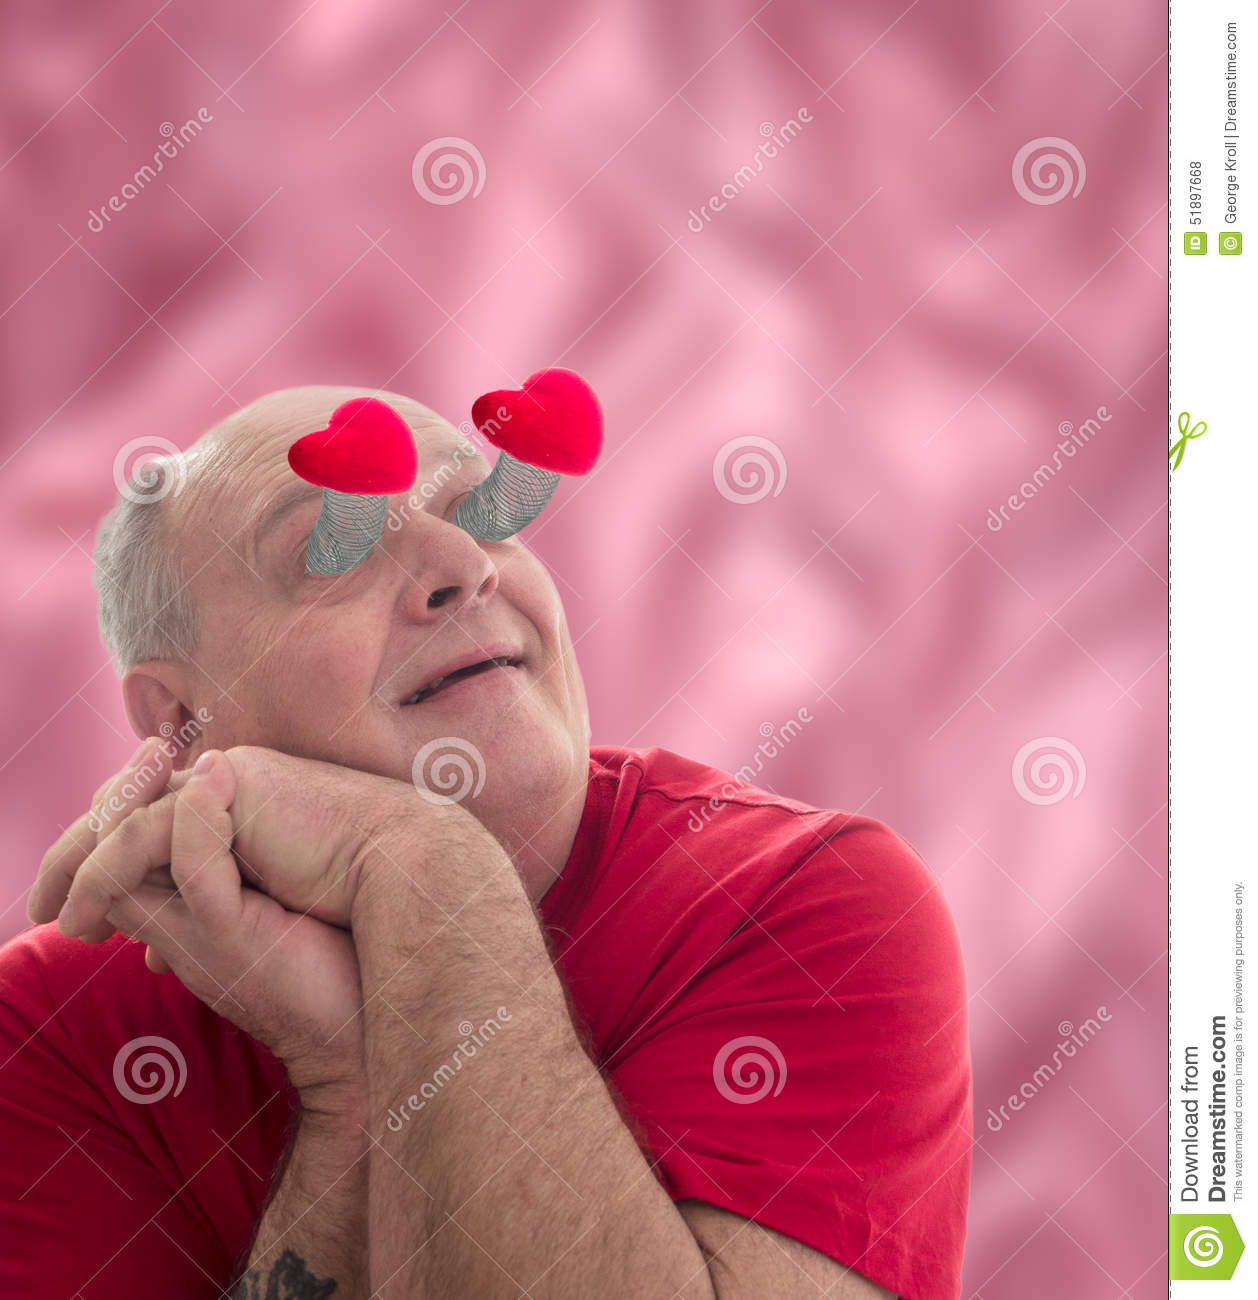 Lovestruck Stock Photo Image Of Struck Humourous Emotion 51897668